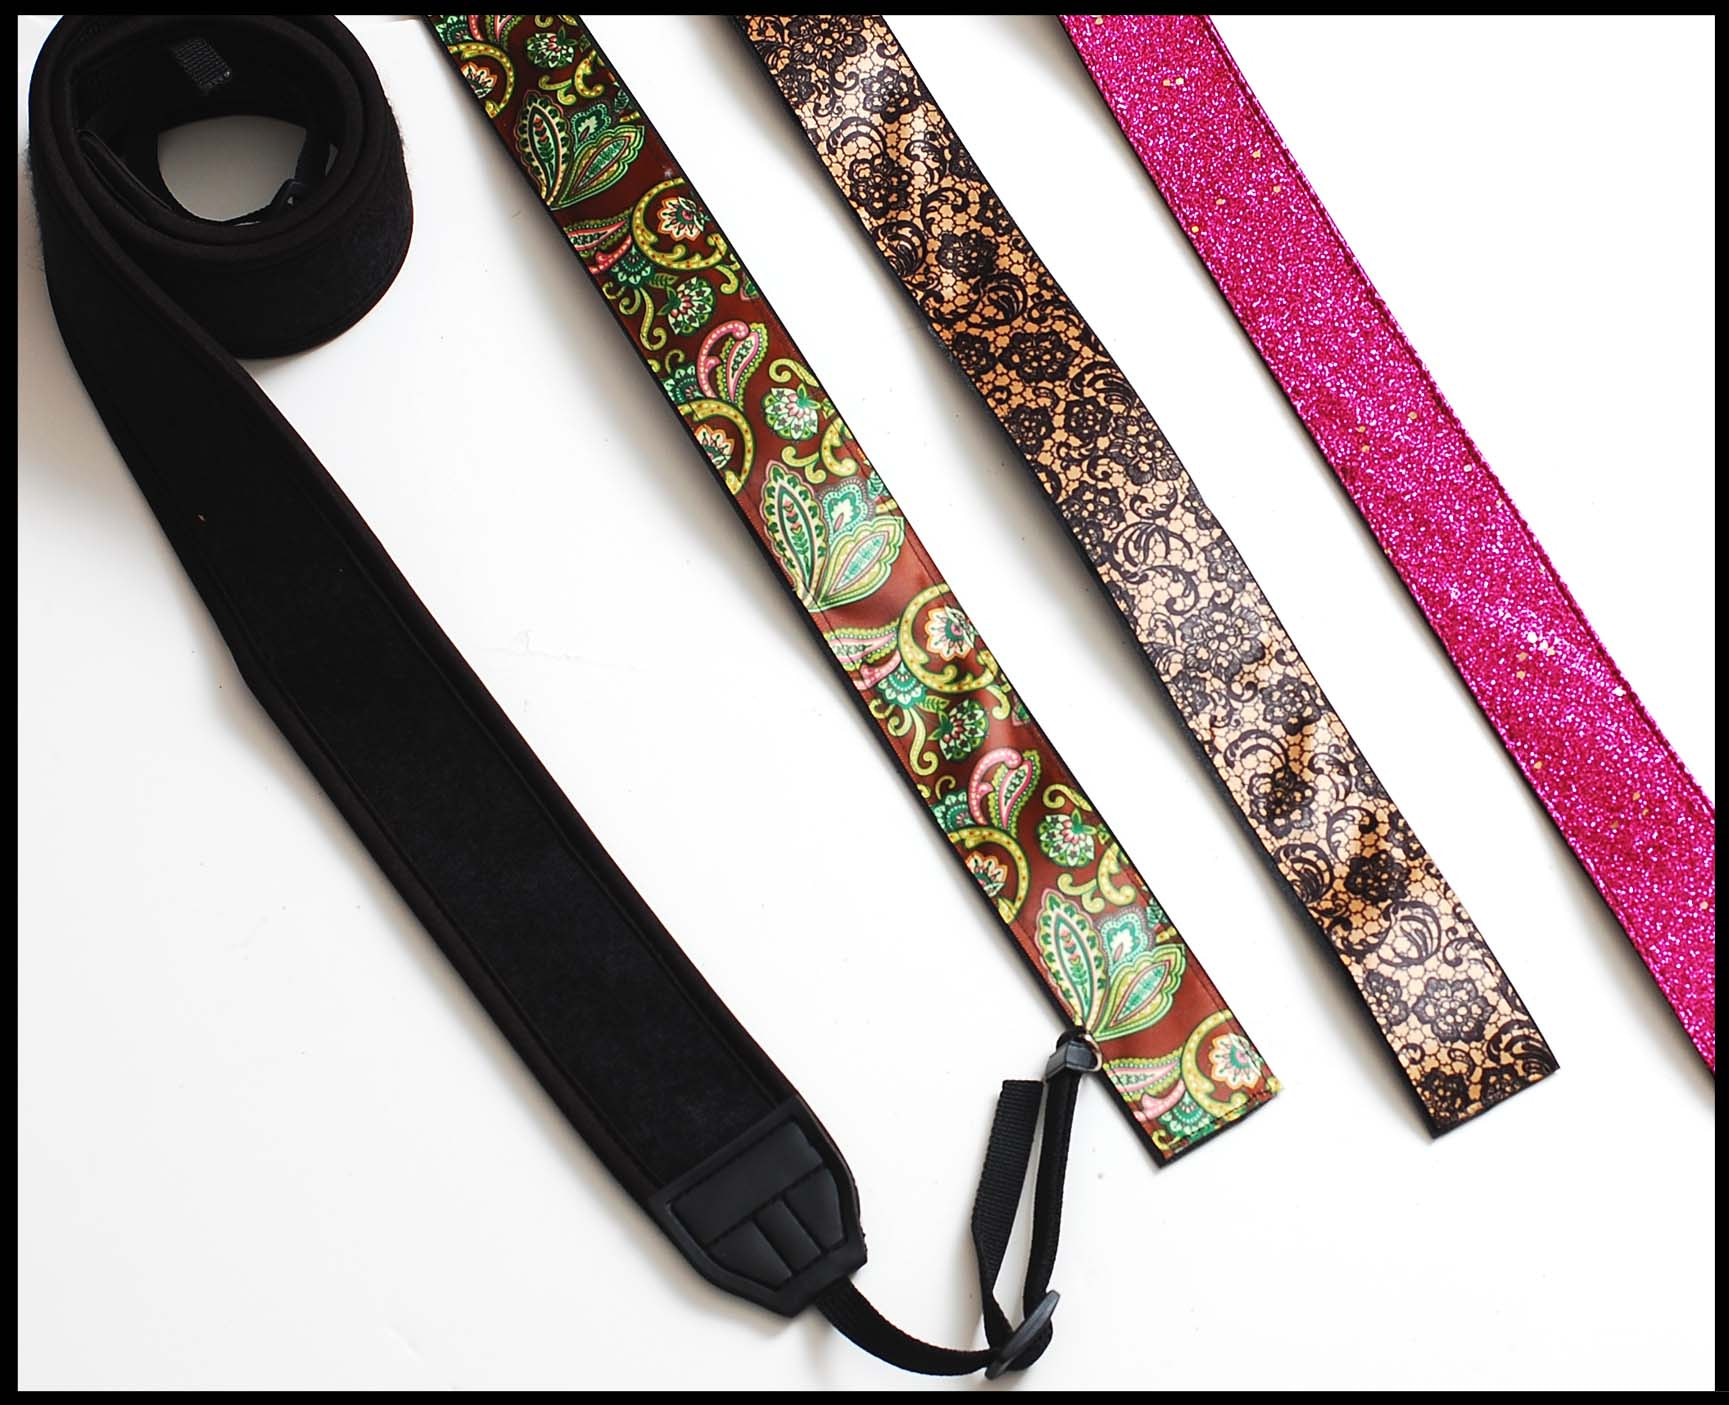 Photograph Interchangeable fashion camera straps  by Rich Smith on 500px